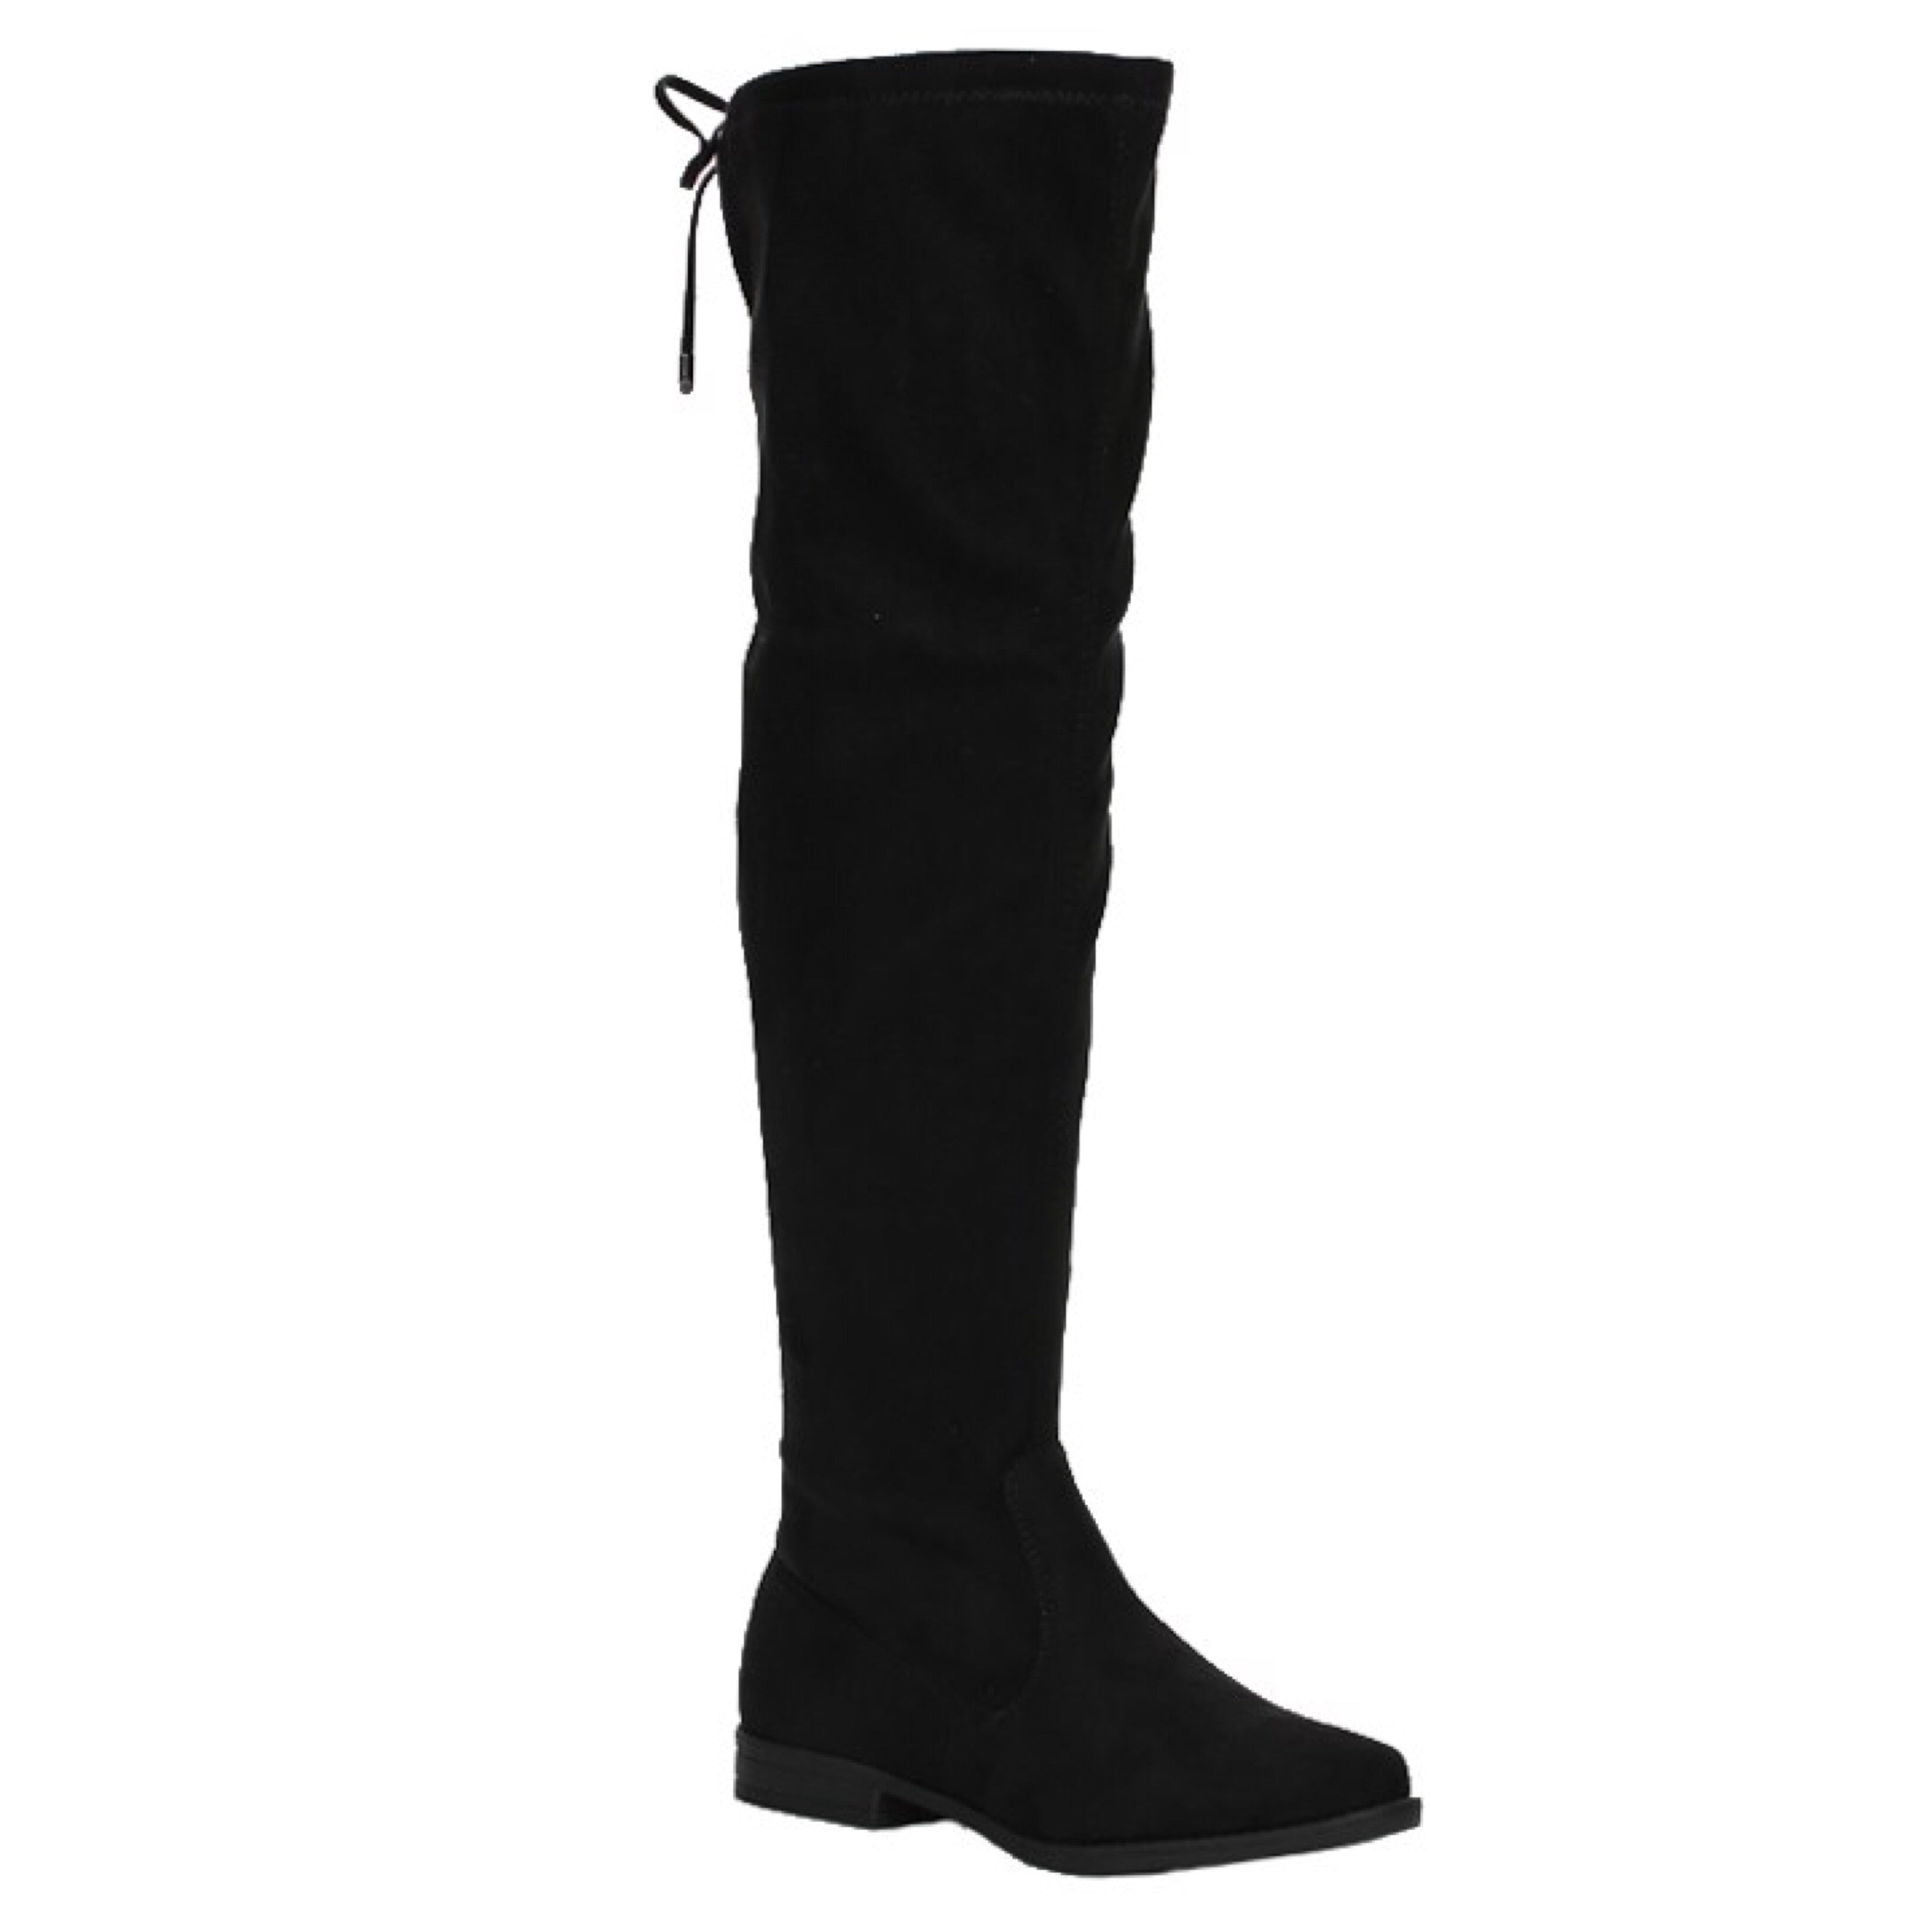 City Chic Knee High Boots-Black